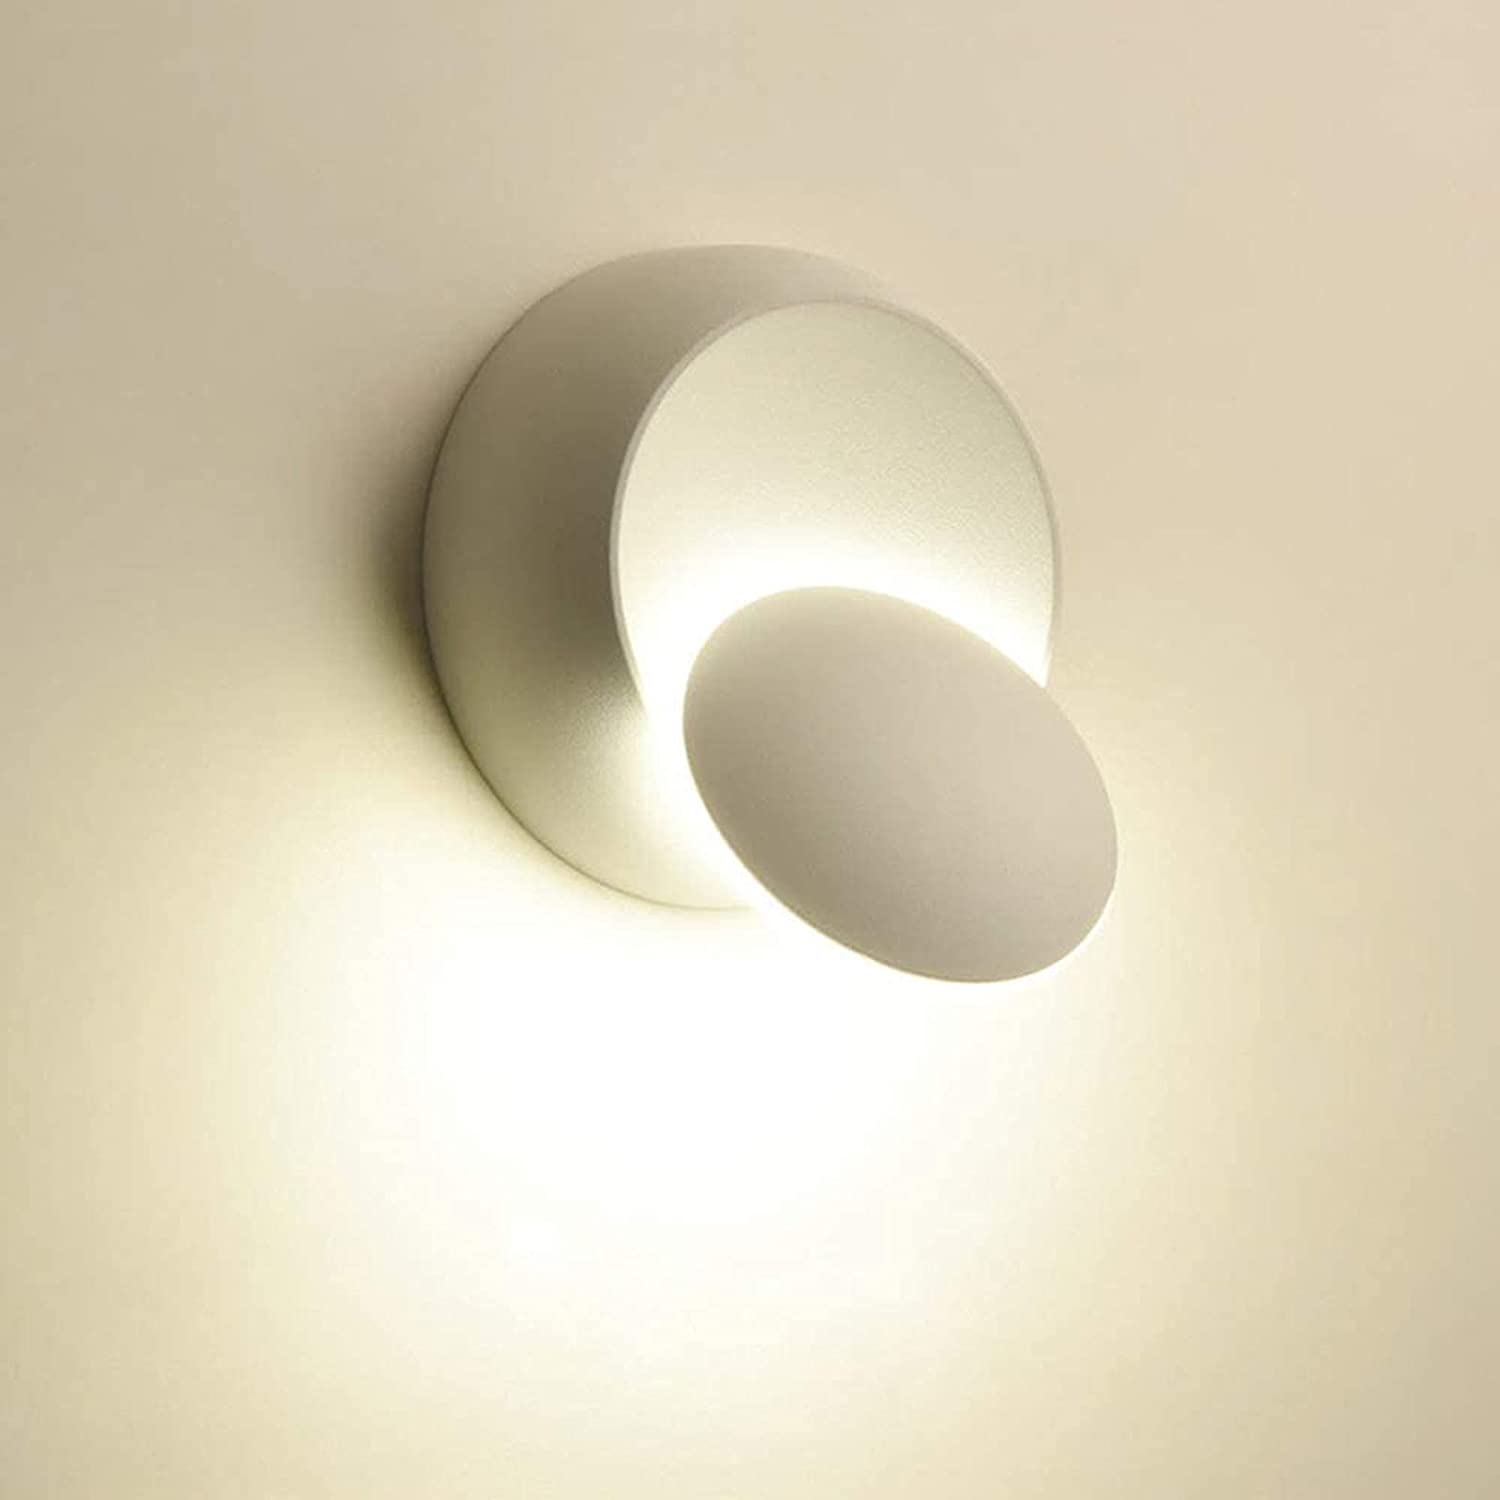 HUER Indoor High quality new Reservation Wall Lights White Modern LED 5W Lamp Warm